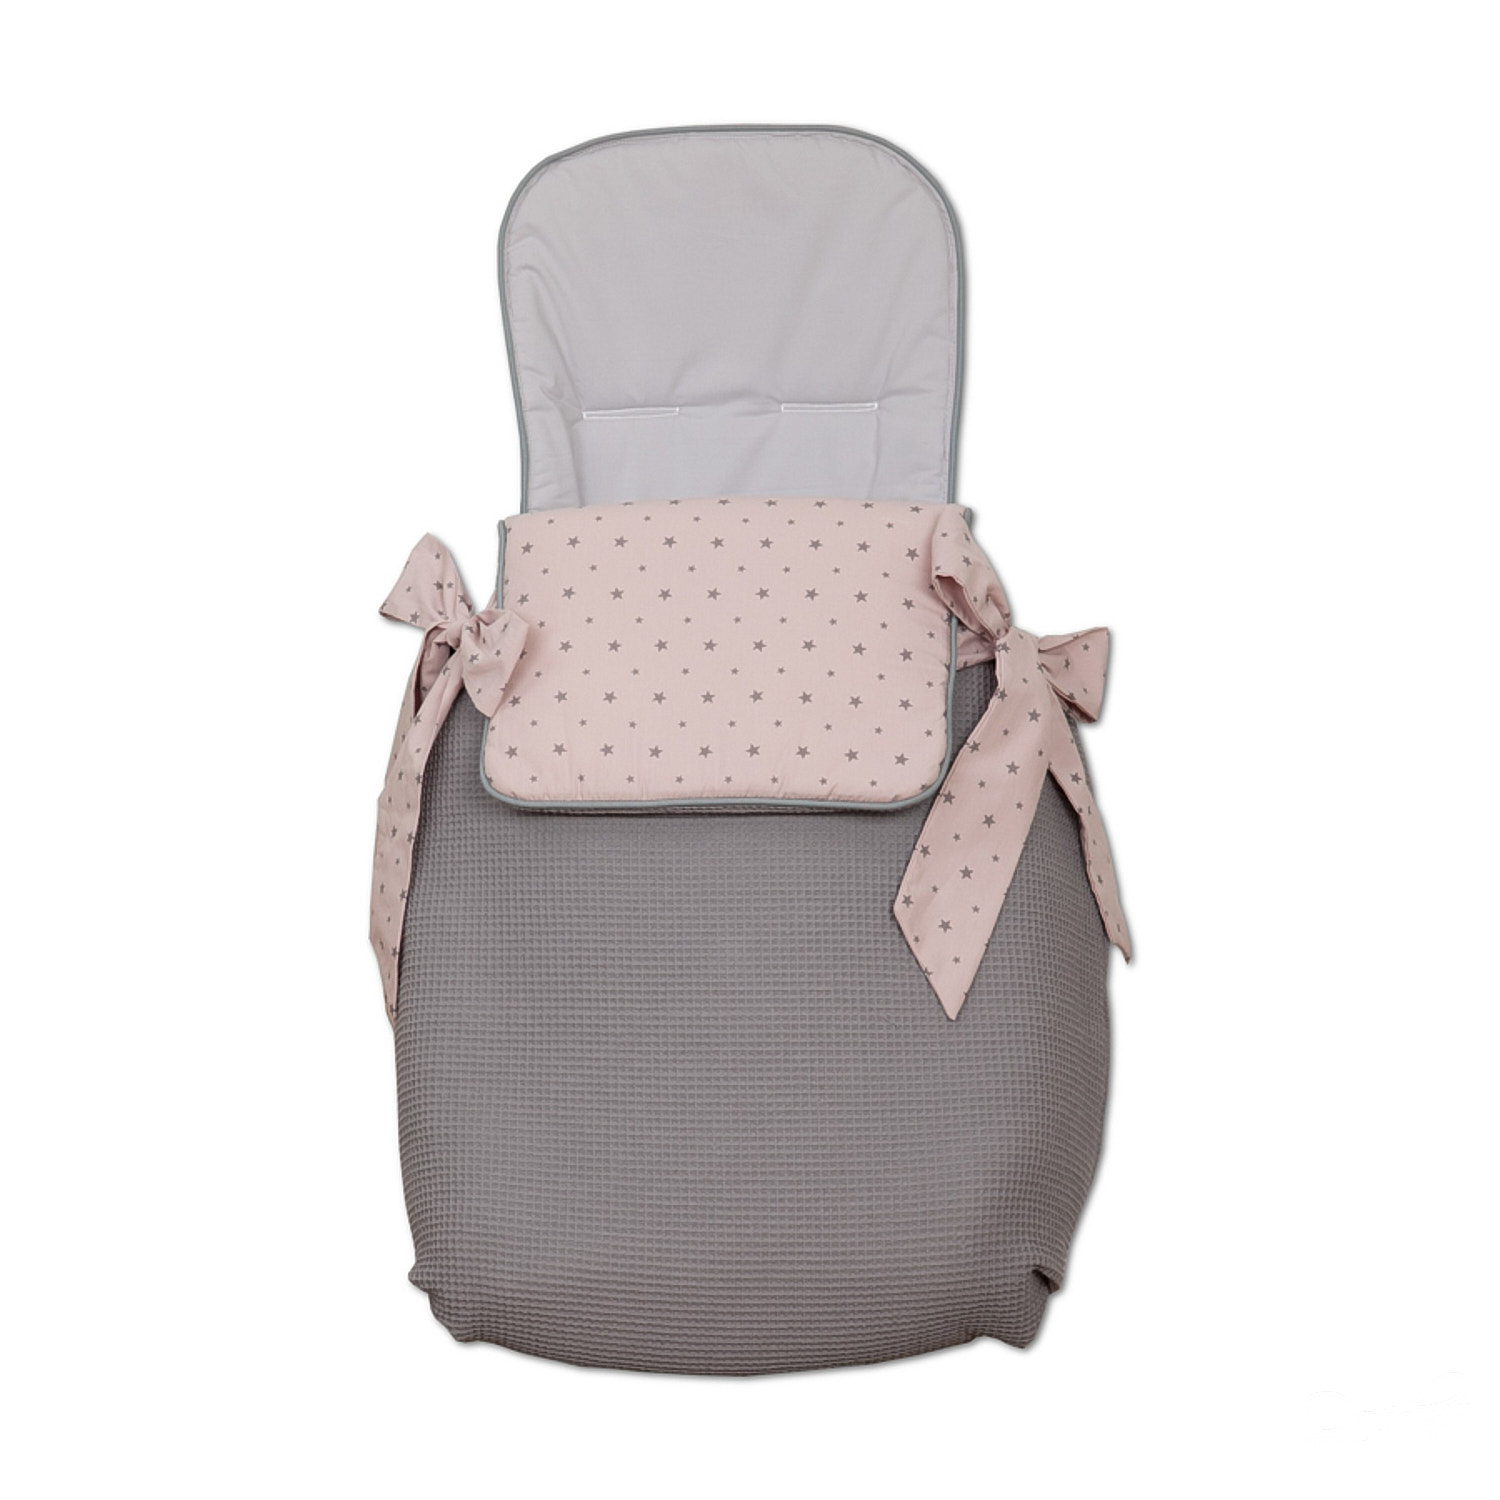 Saco 3 usos Little Star Rosa